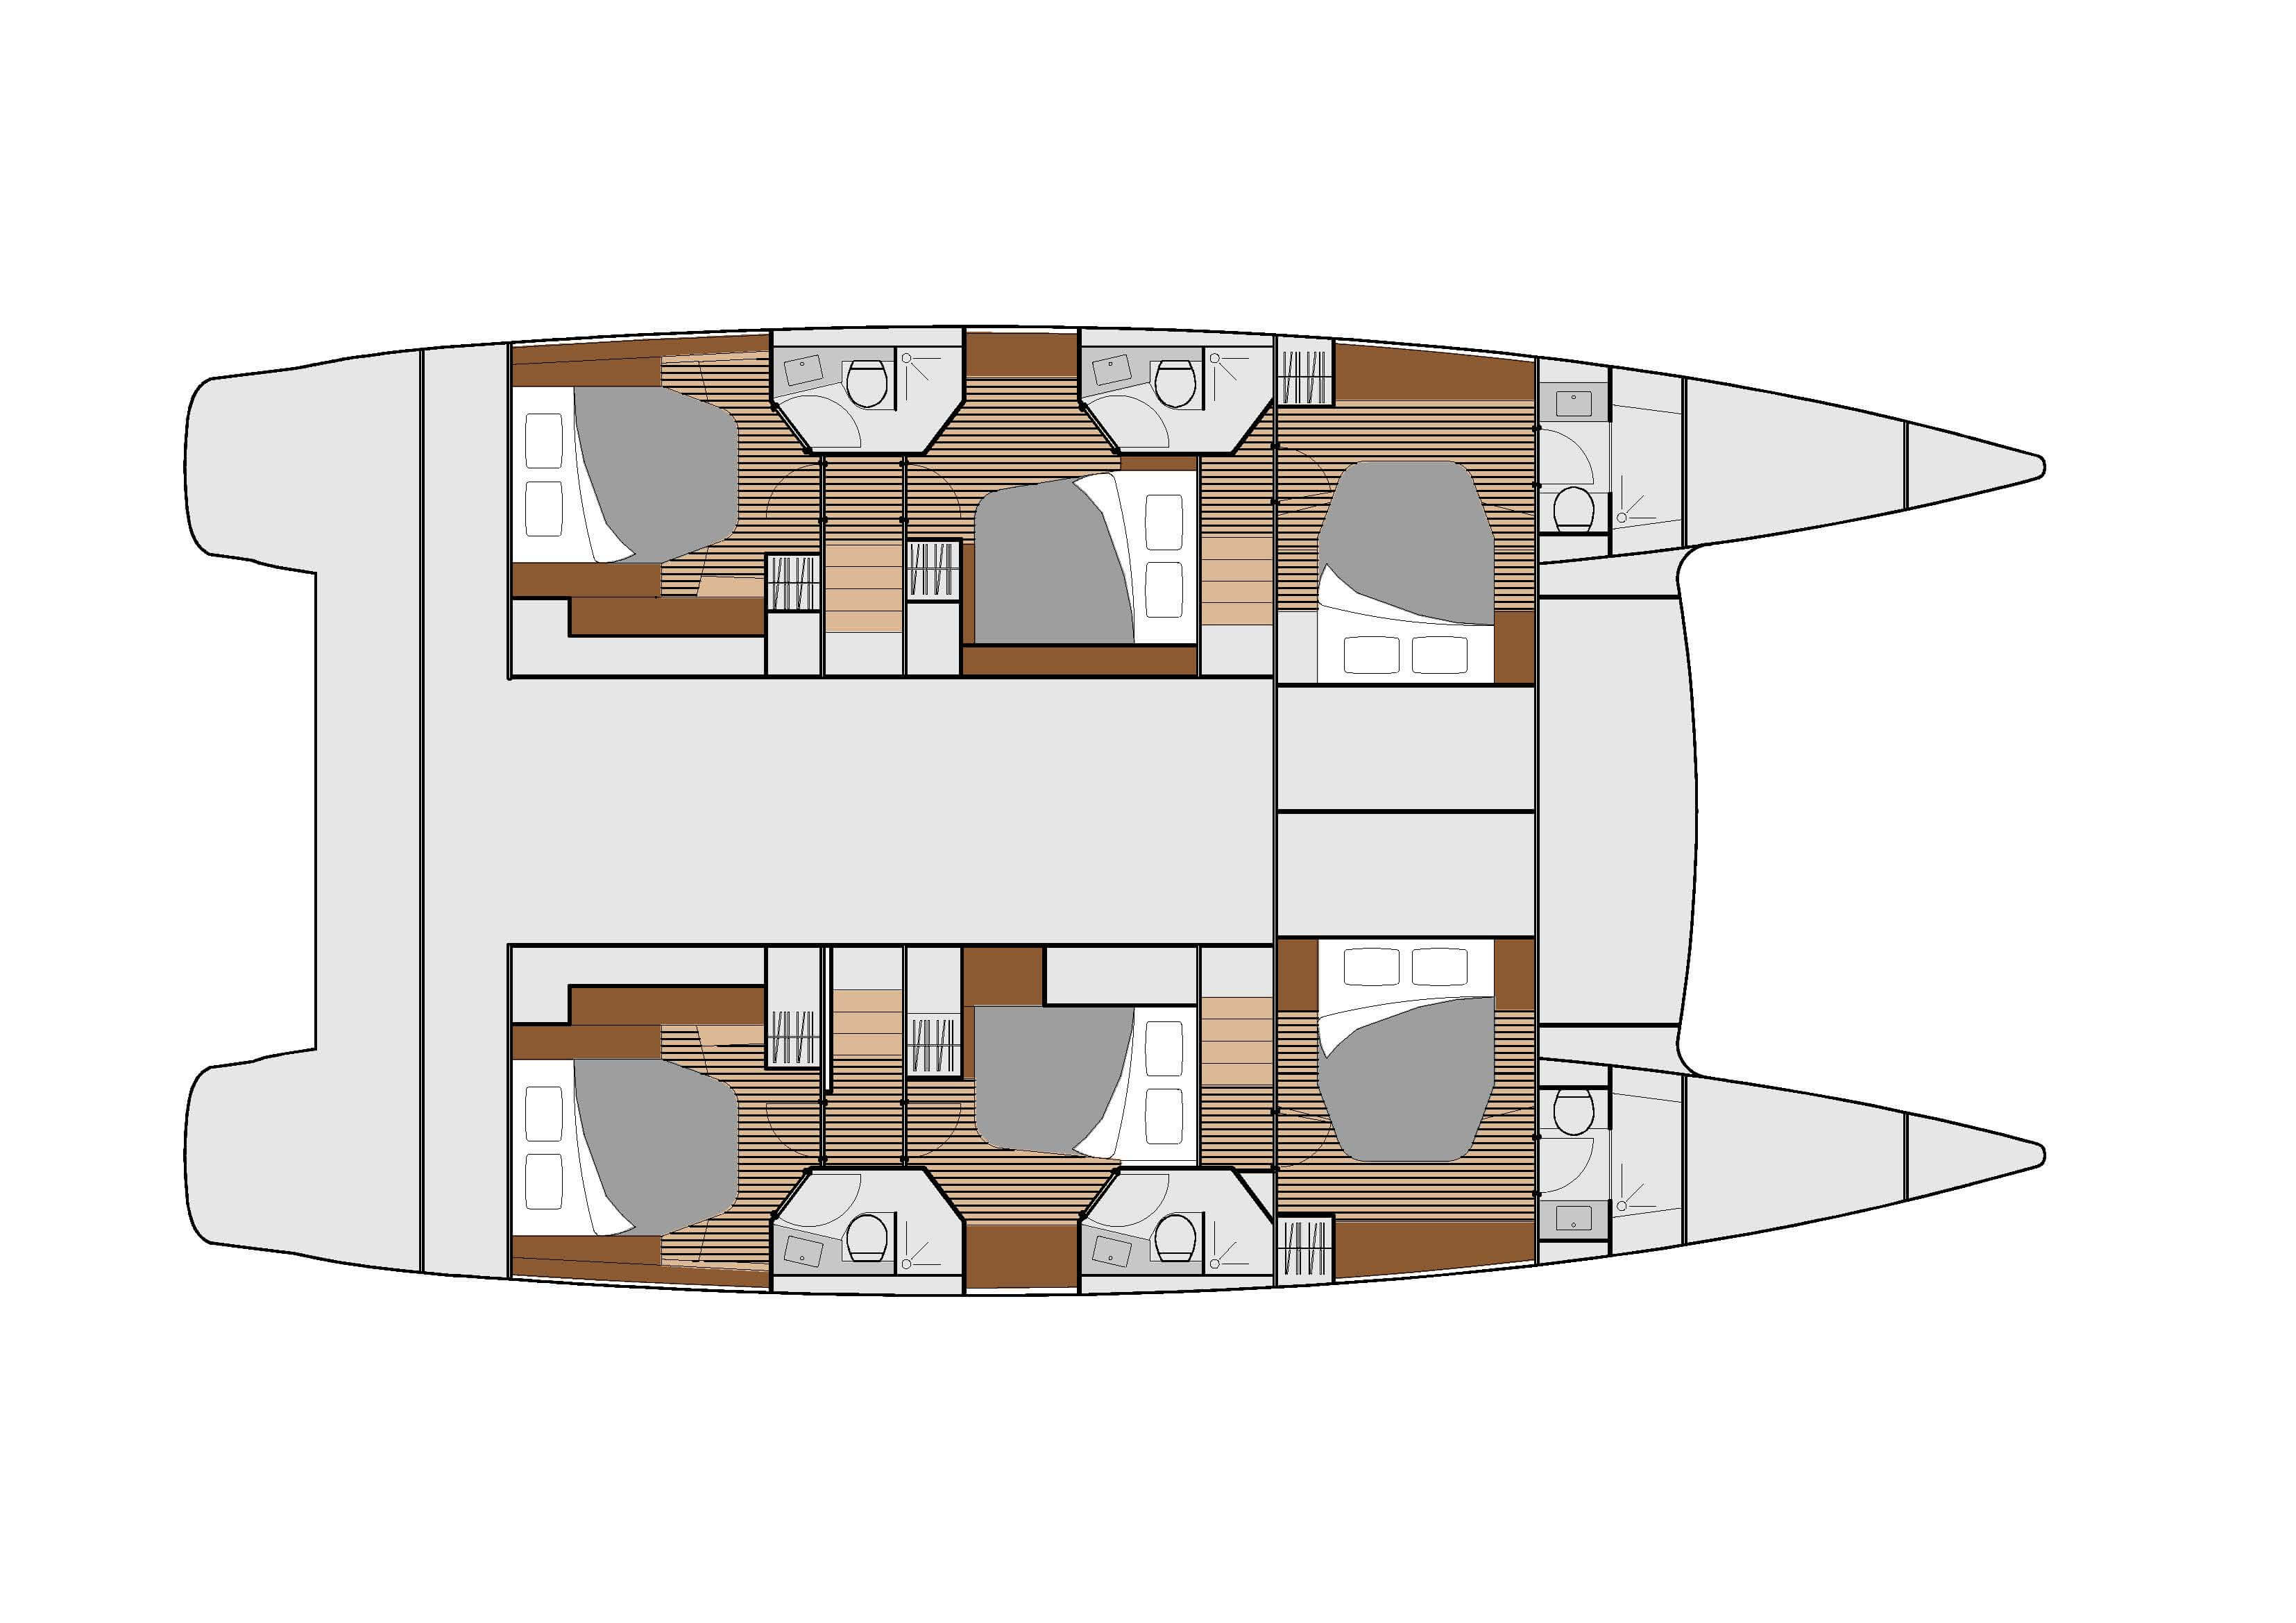 ip58-1-layout